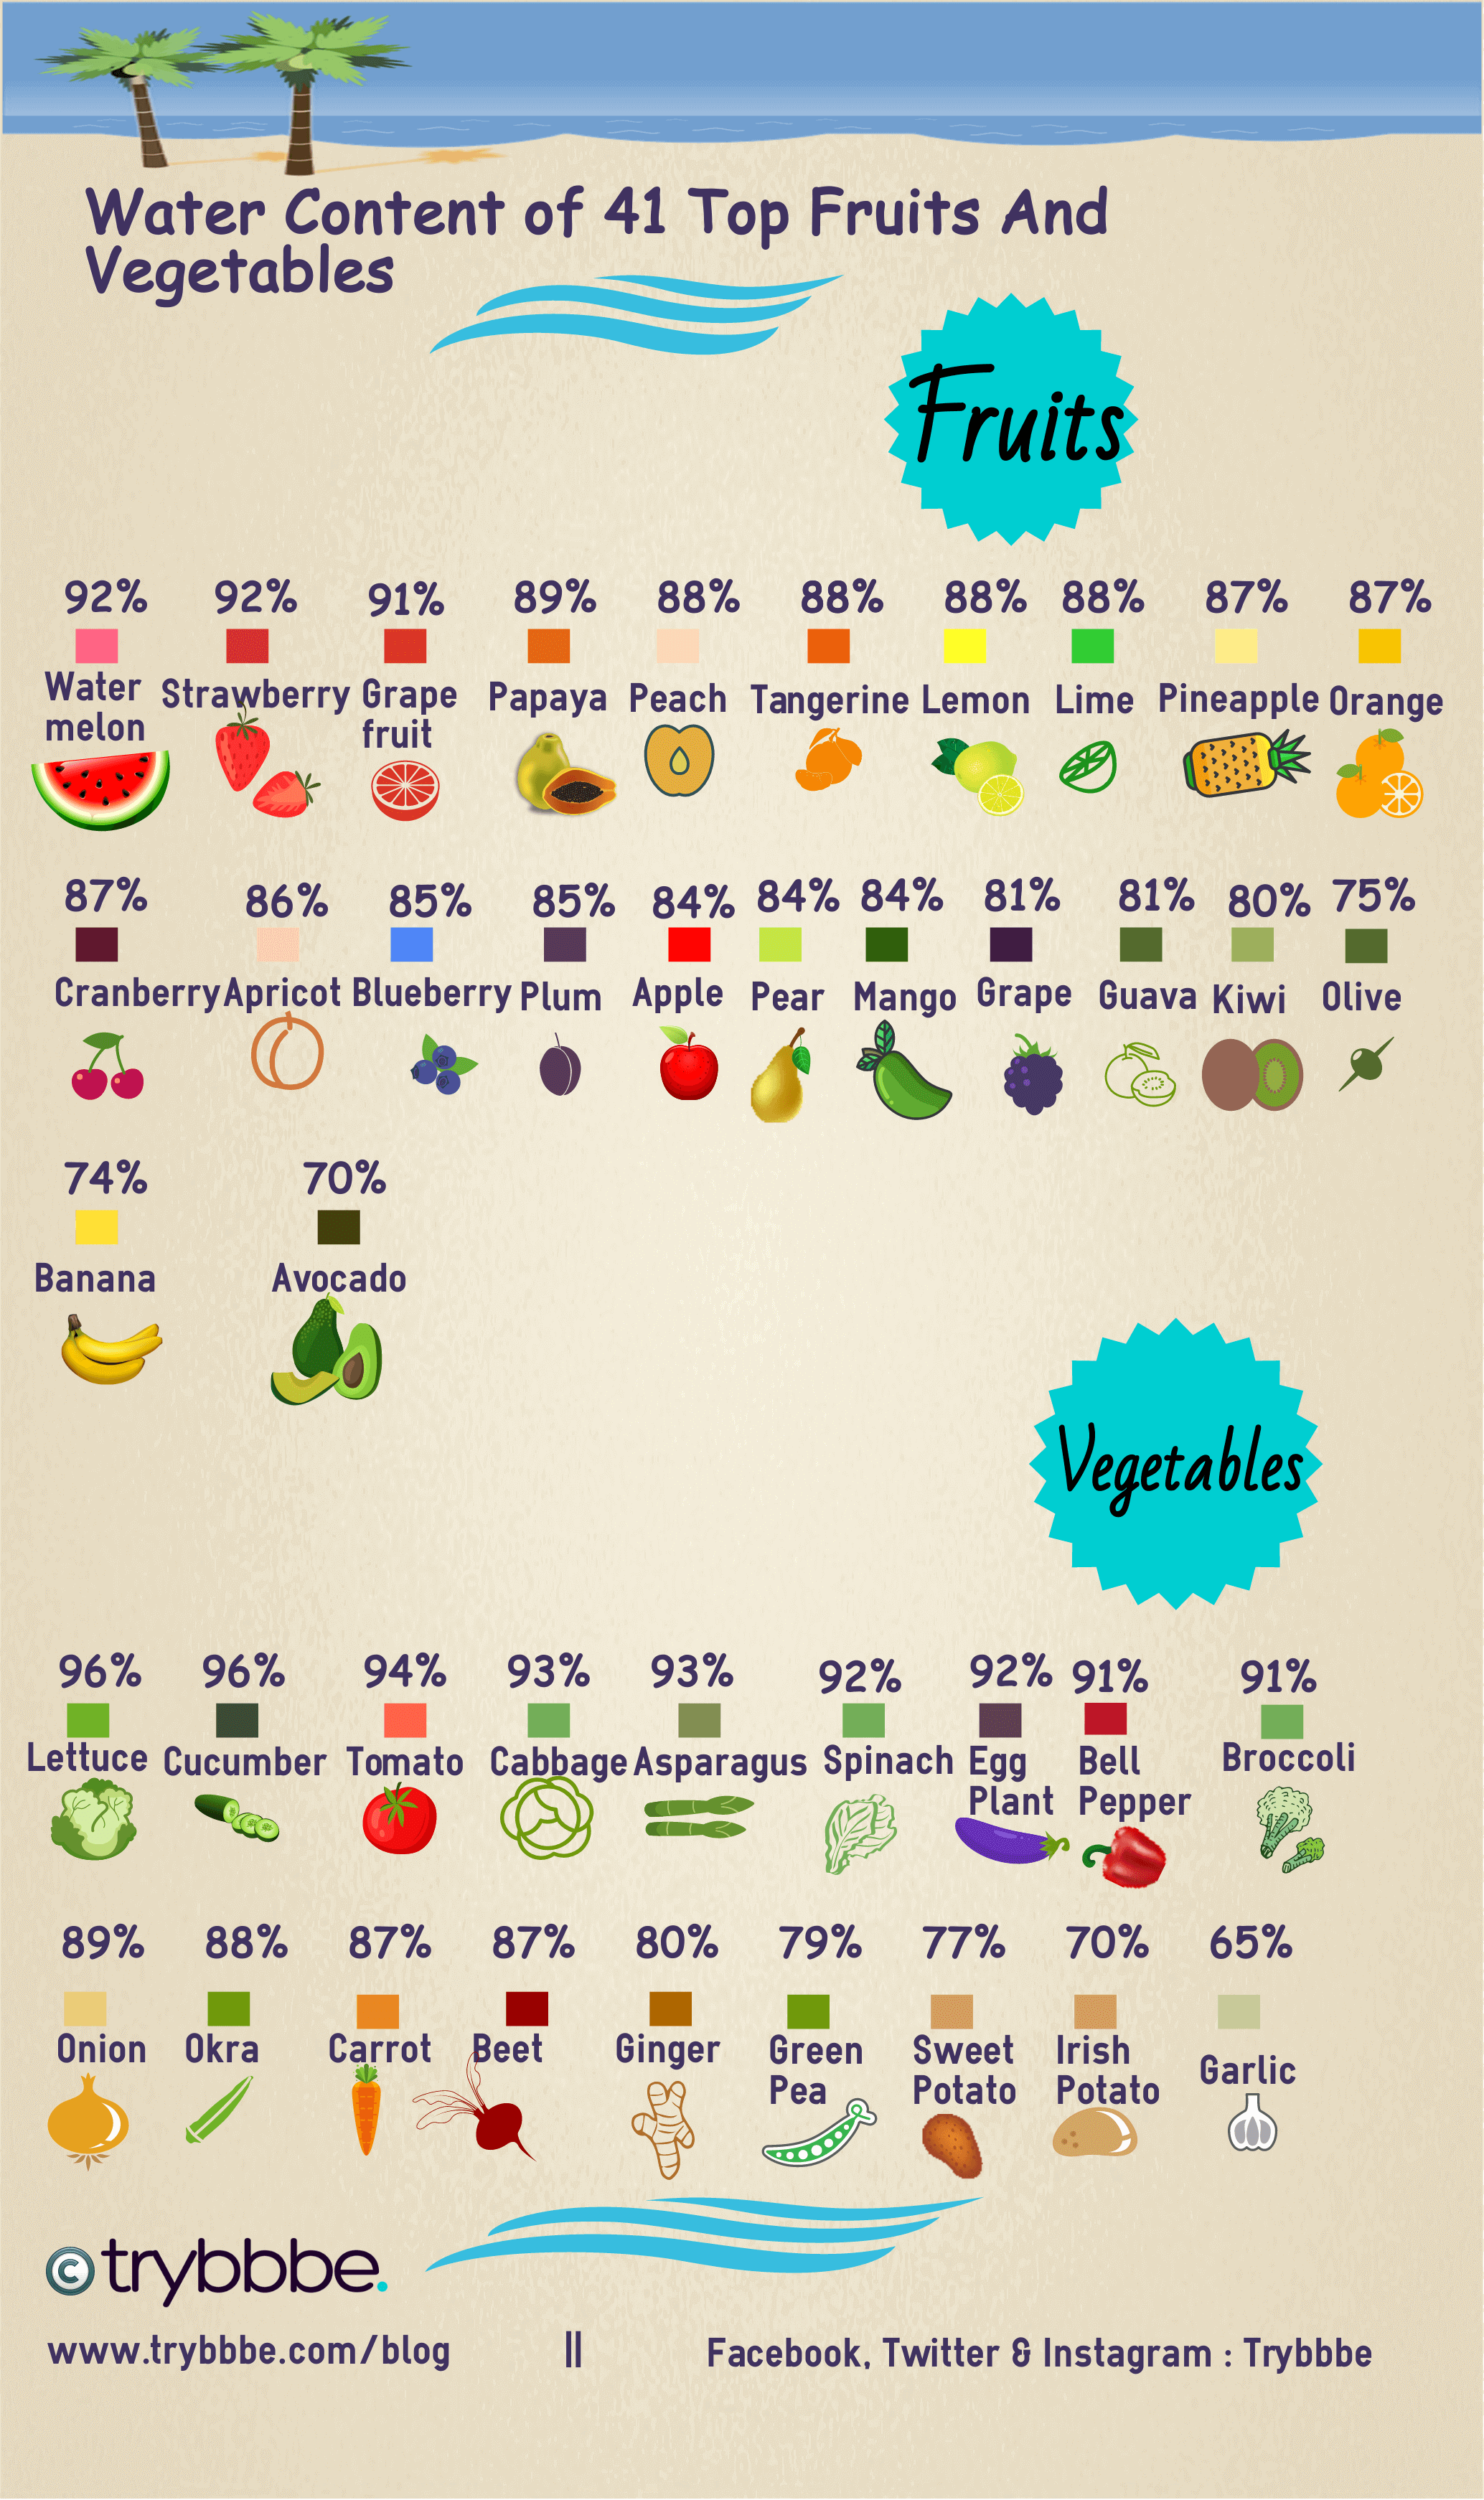 Chart Showing The Water Content In Por Fruits And Vegetables